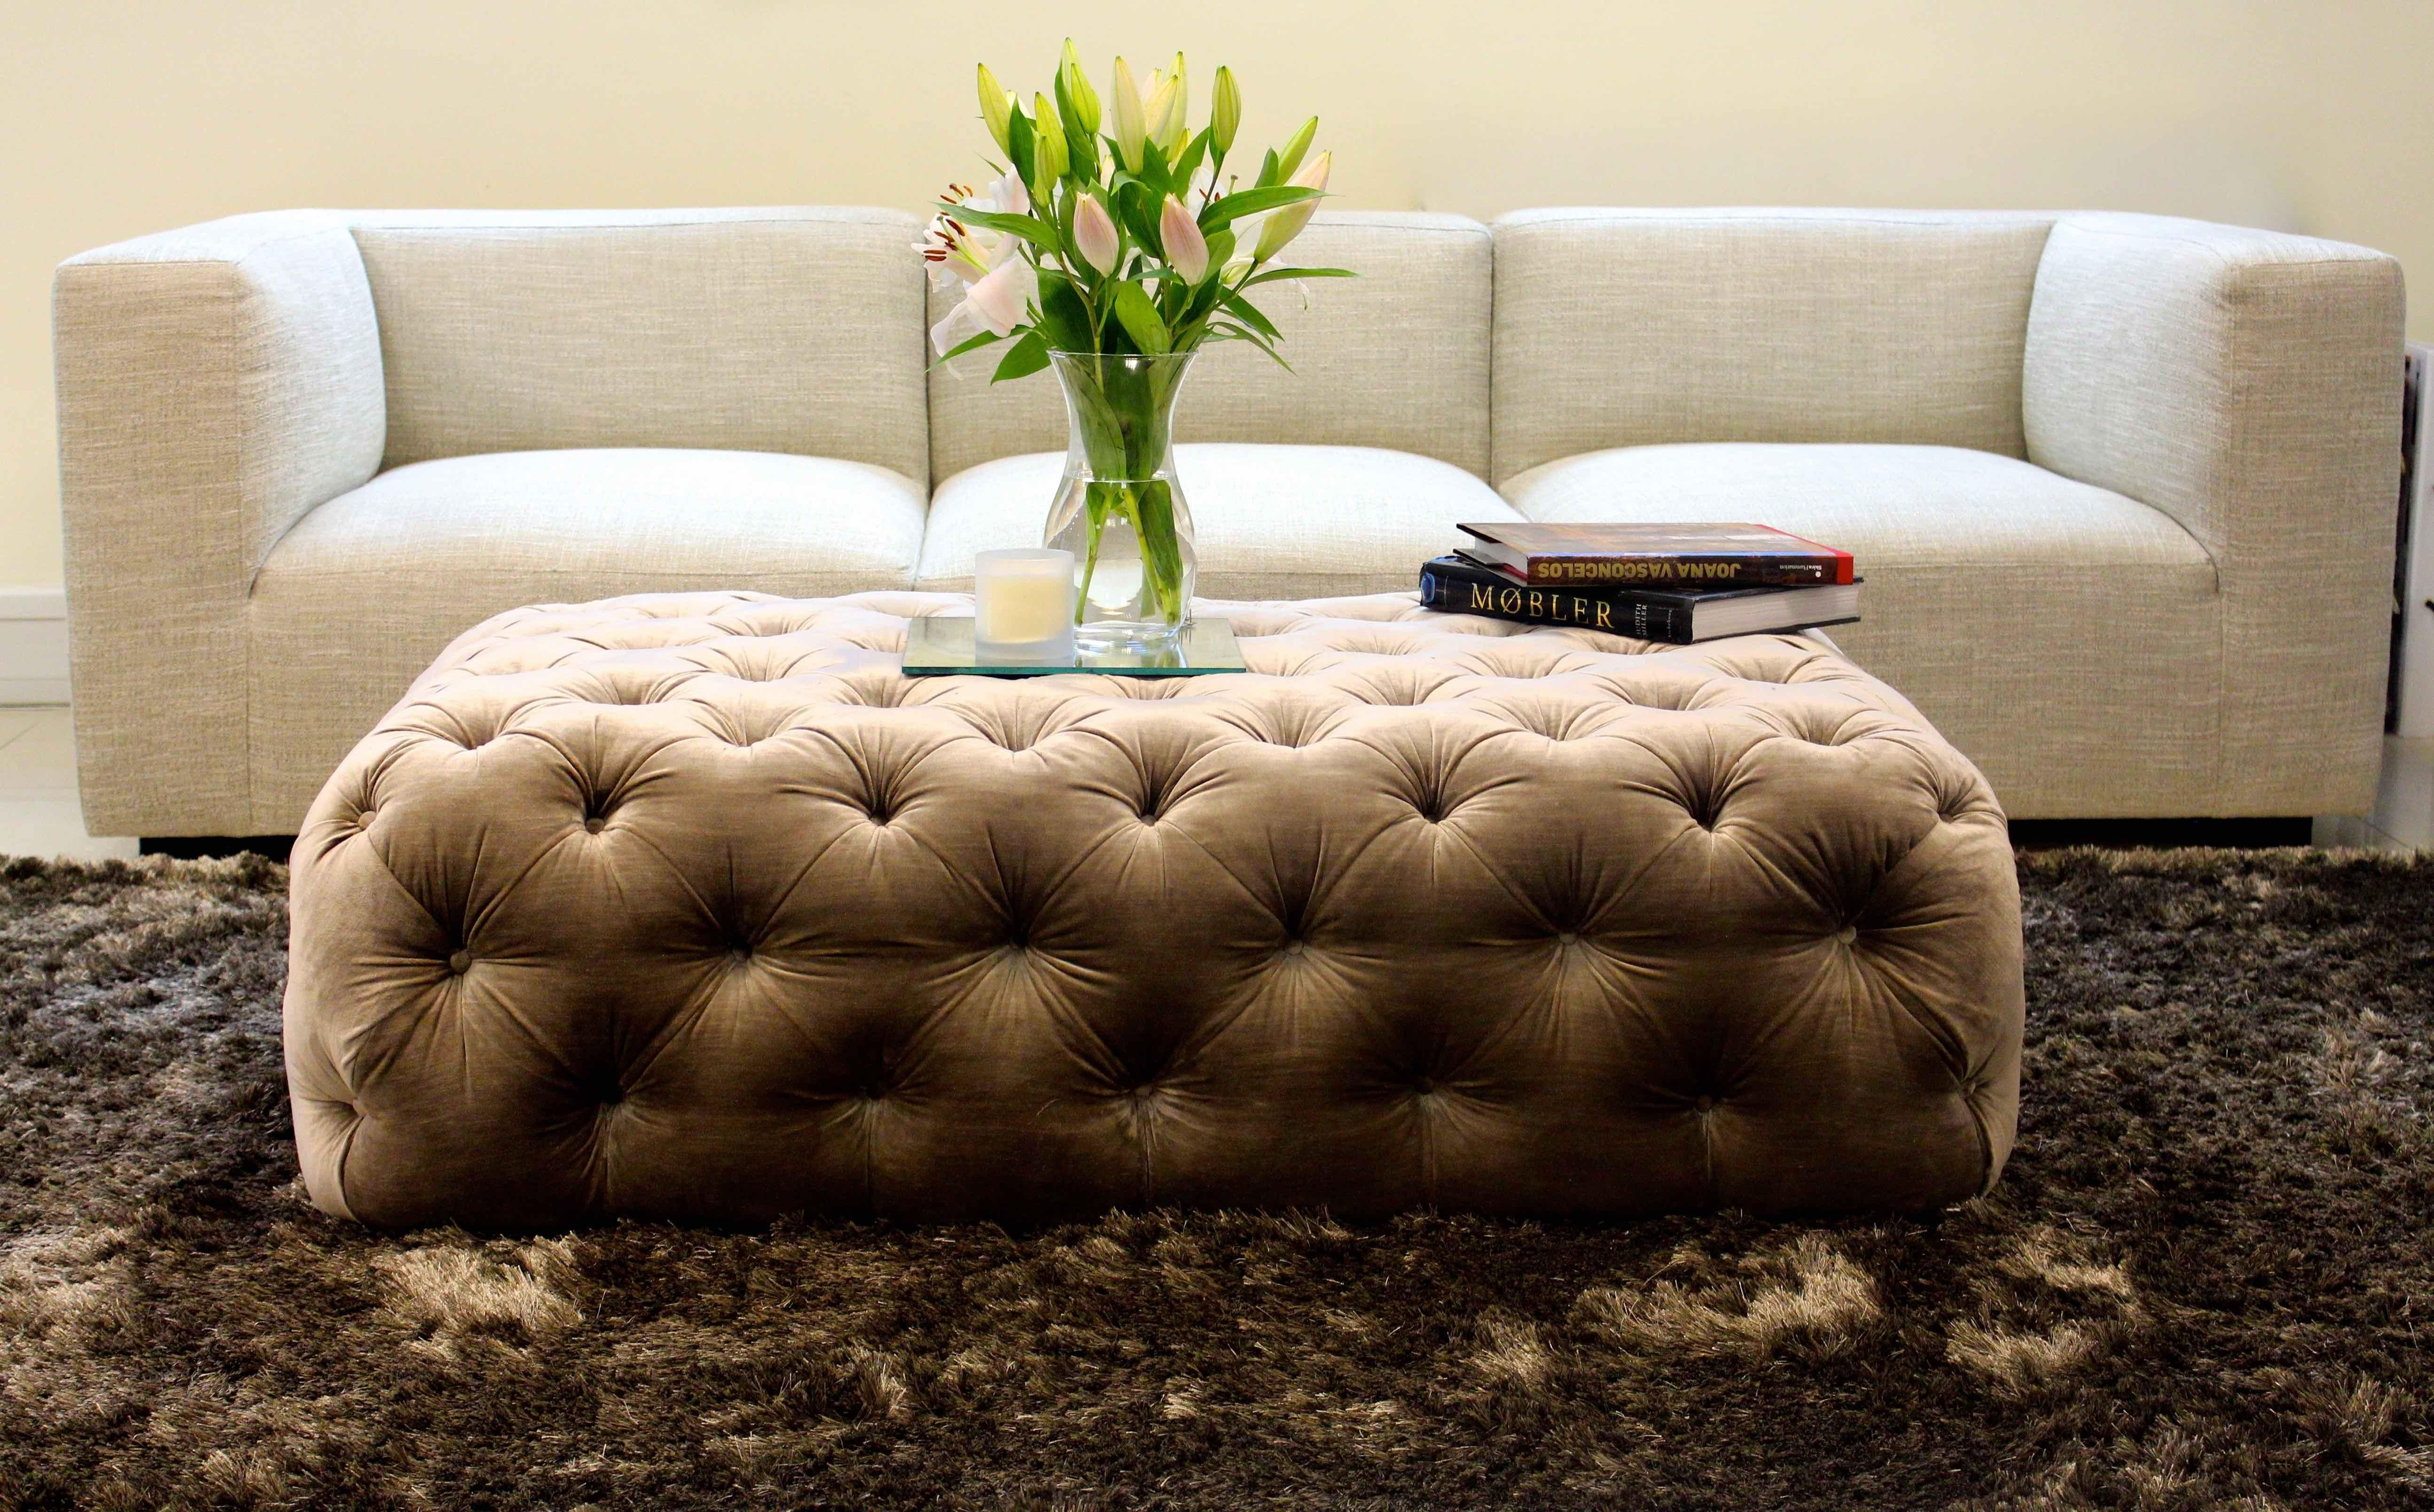 Oned Ottoman As A Coffee Table